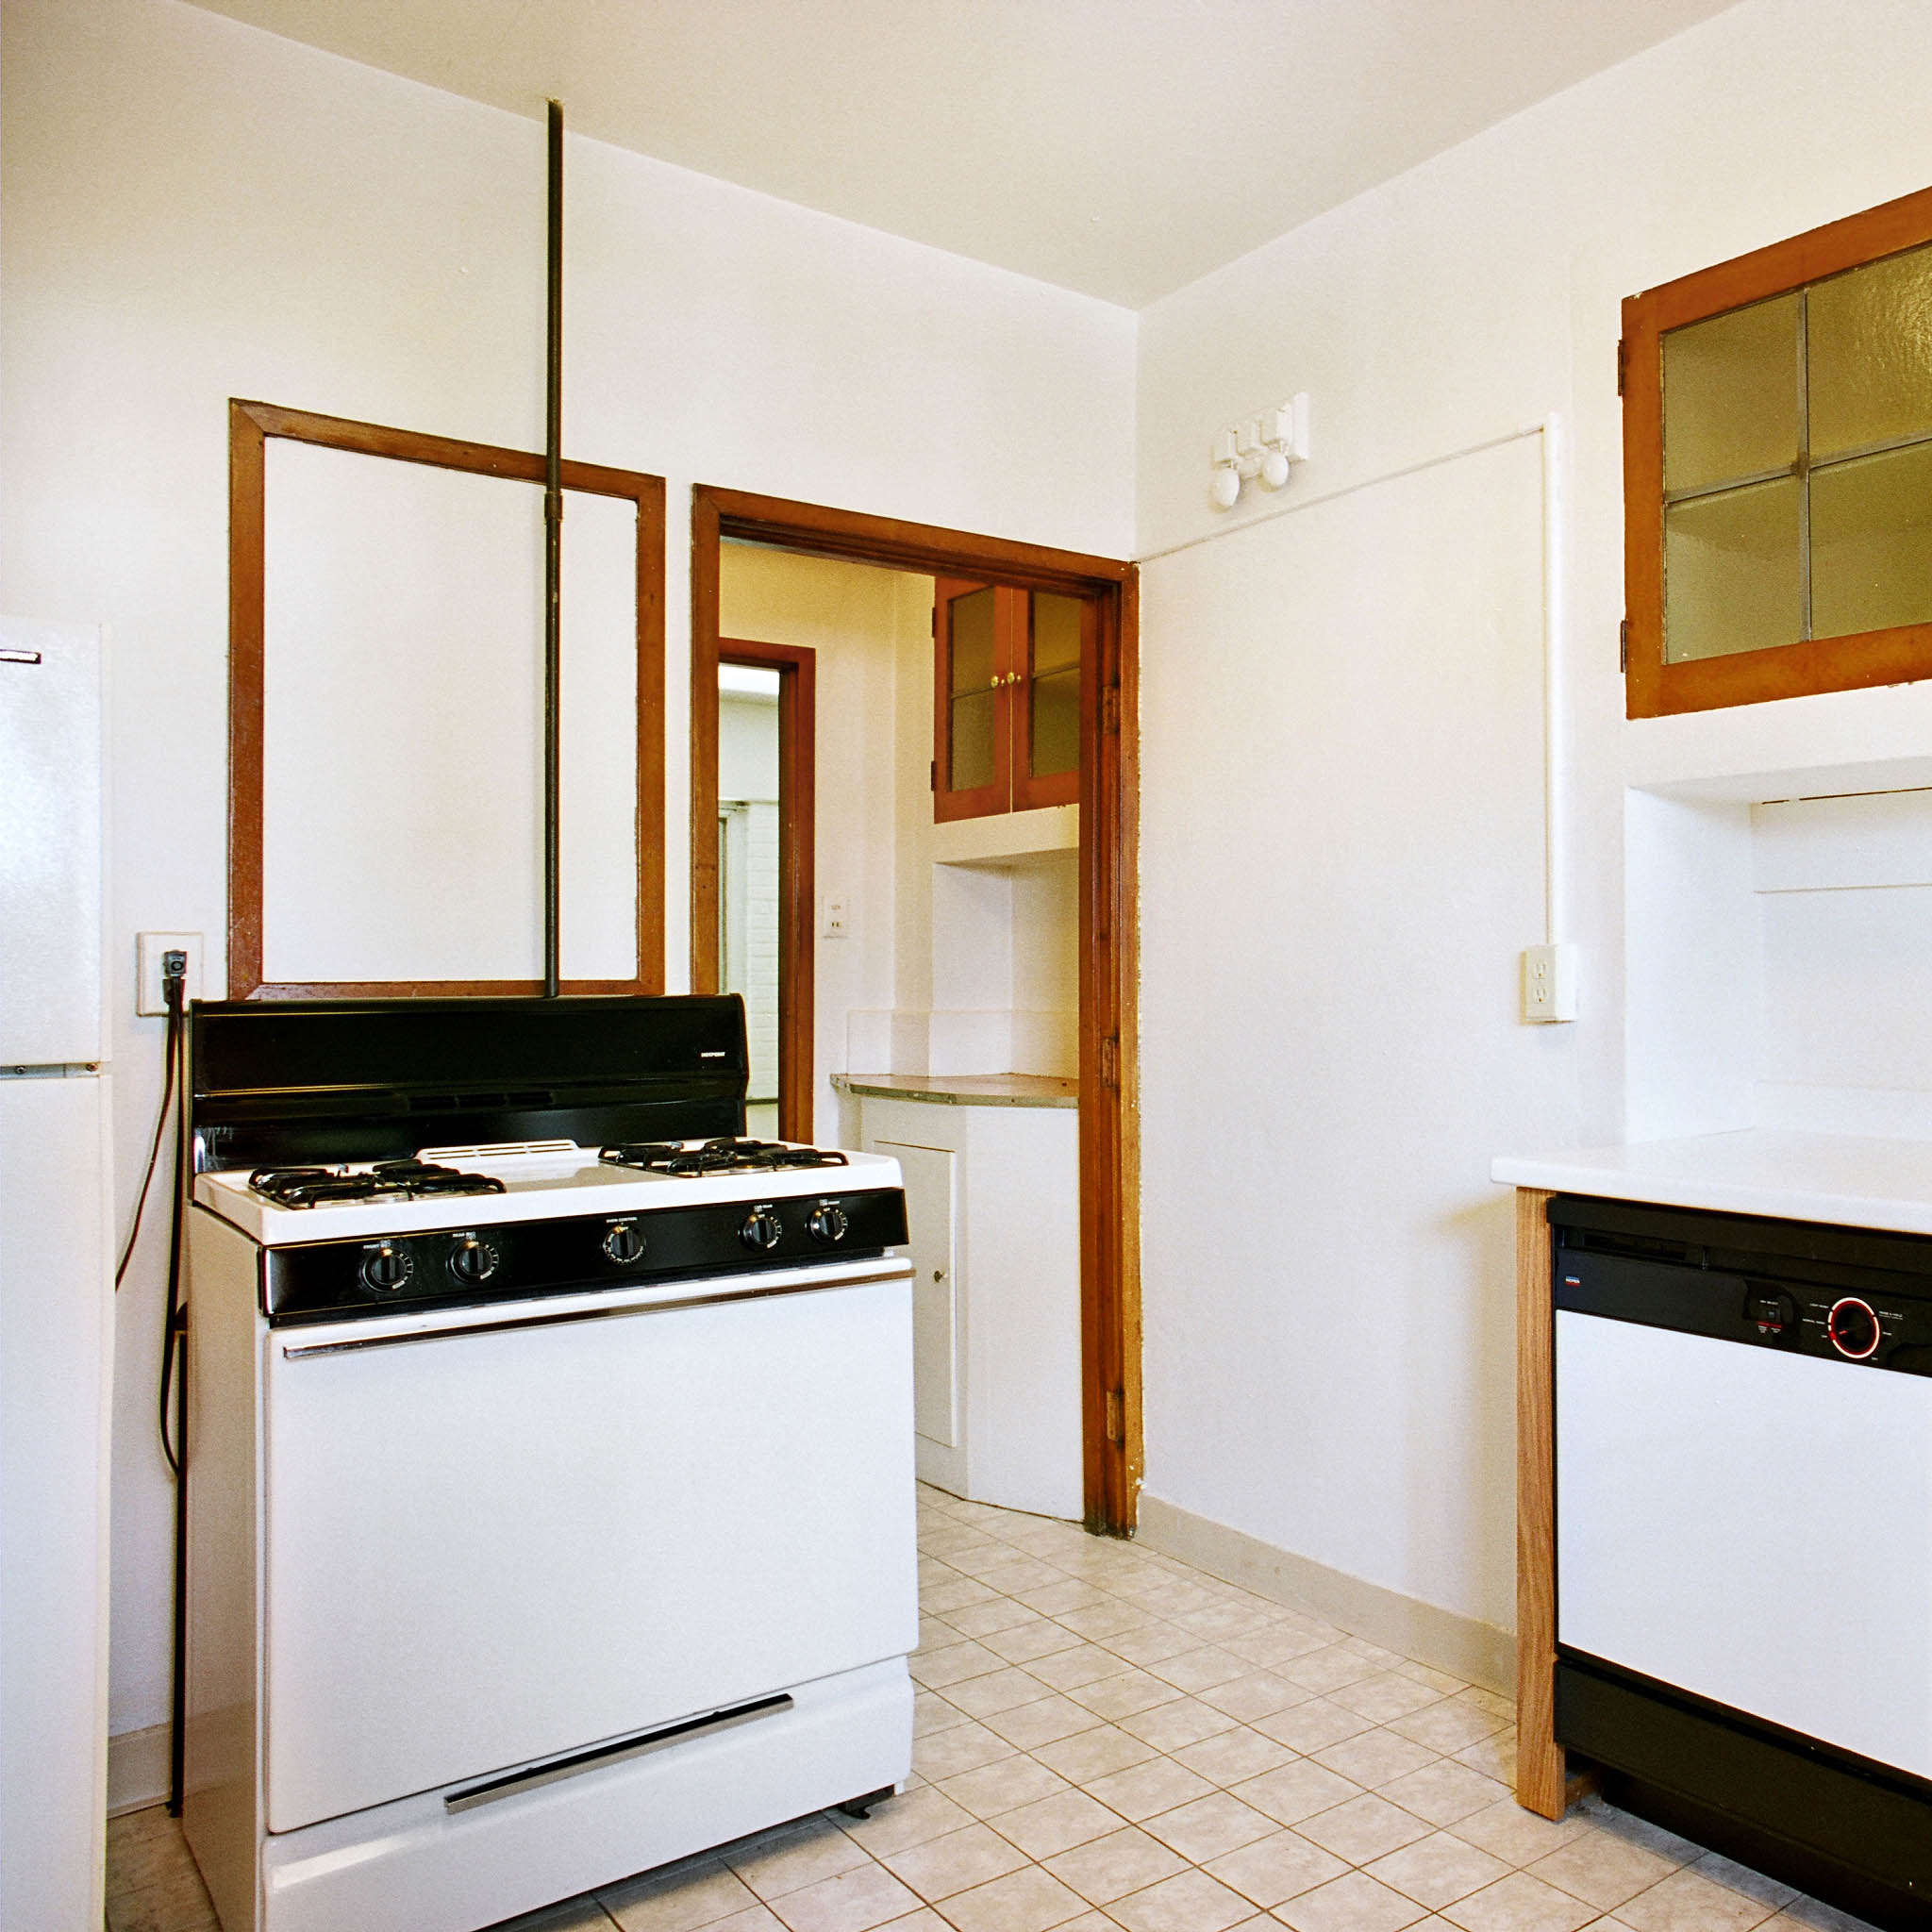 interior of 340 S. Highland Ave, Apt. 3A 9